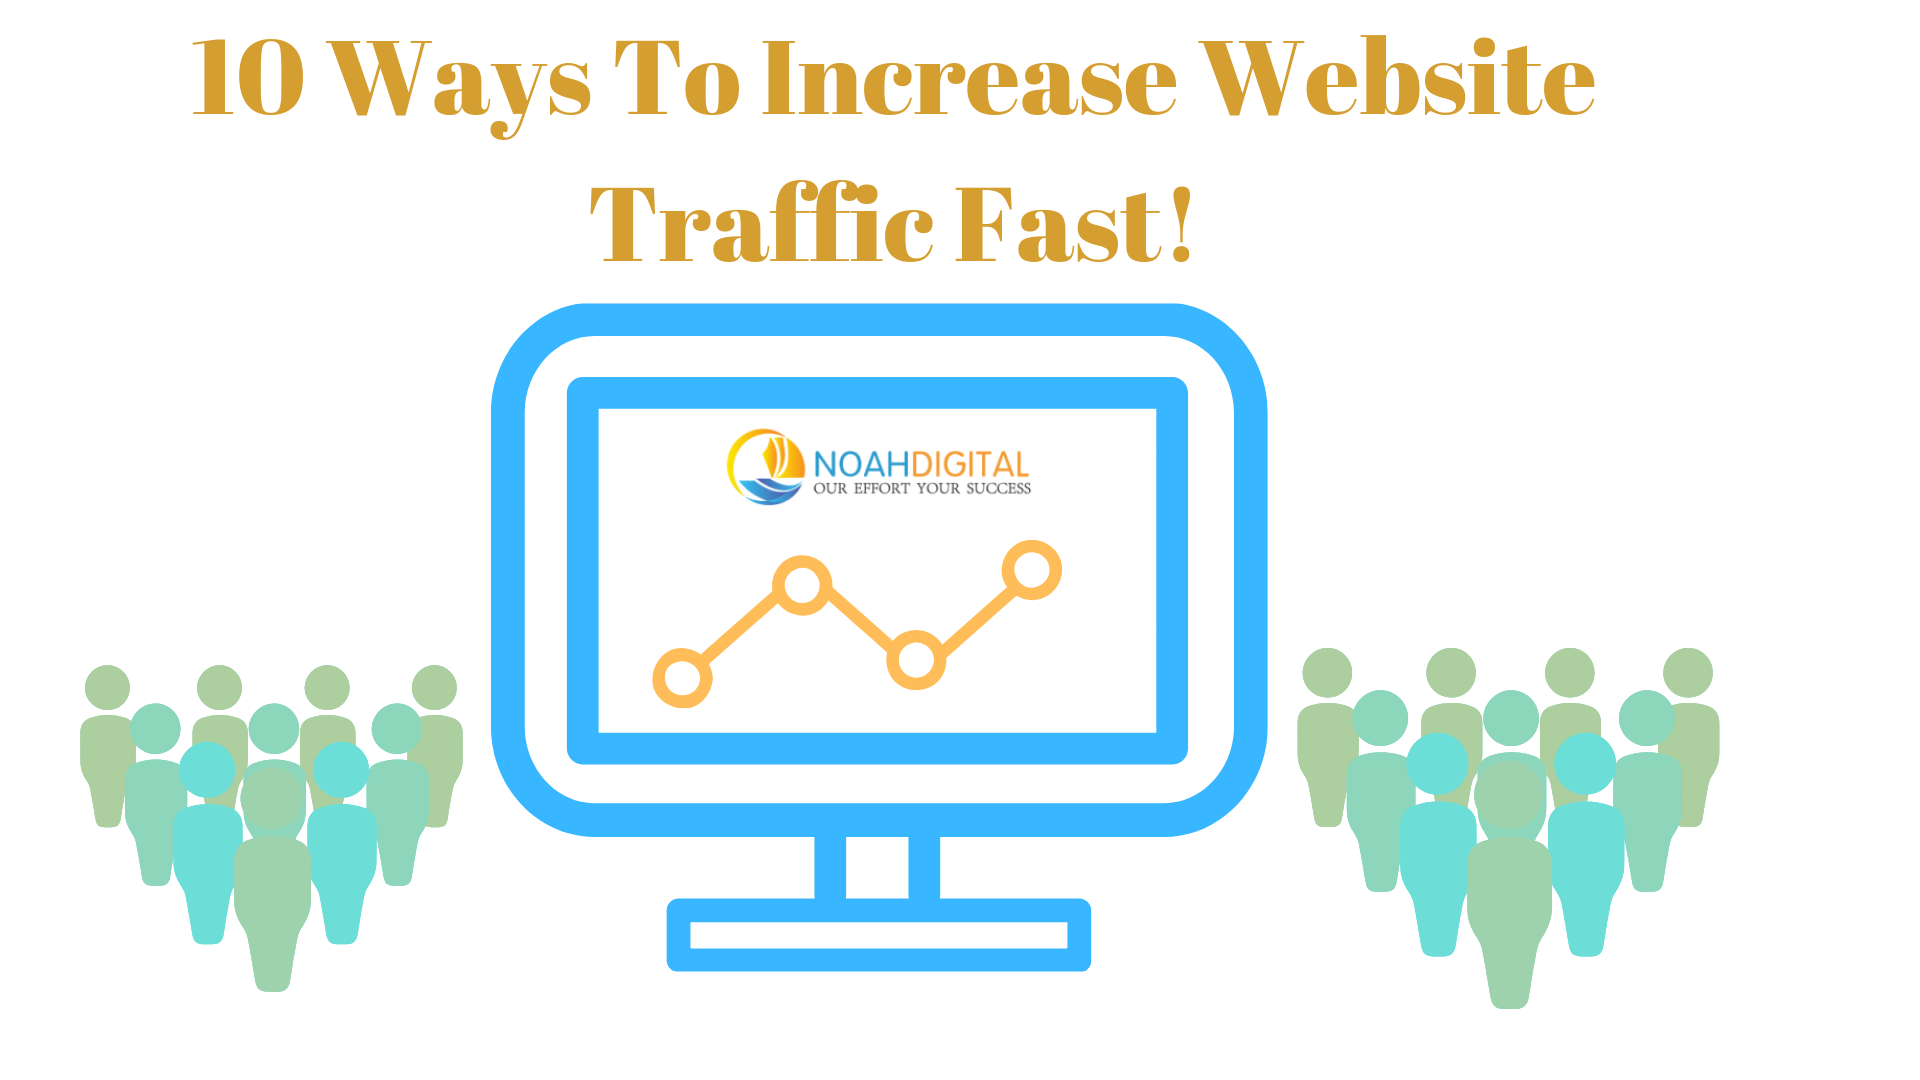 Ways to increase website traffic fast